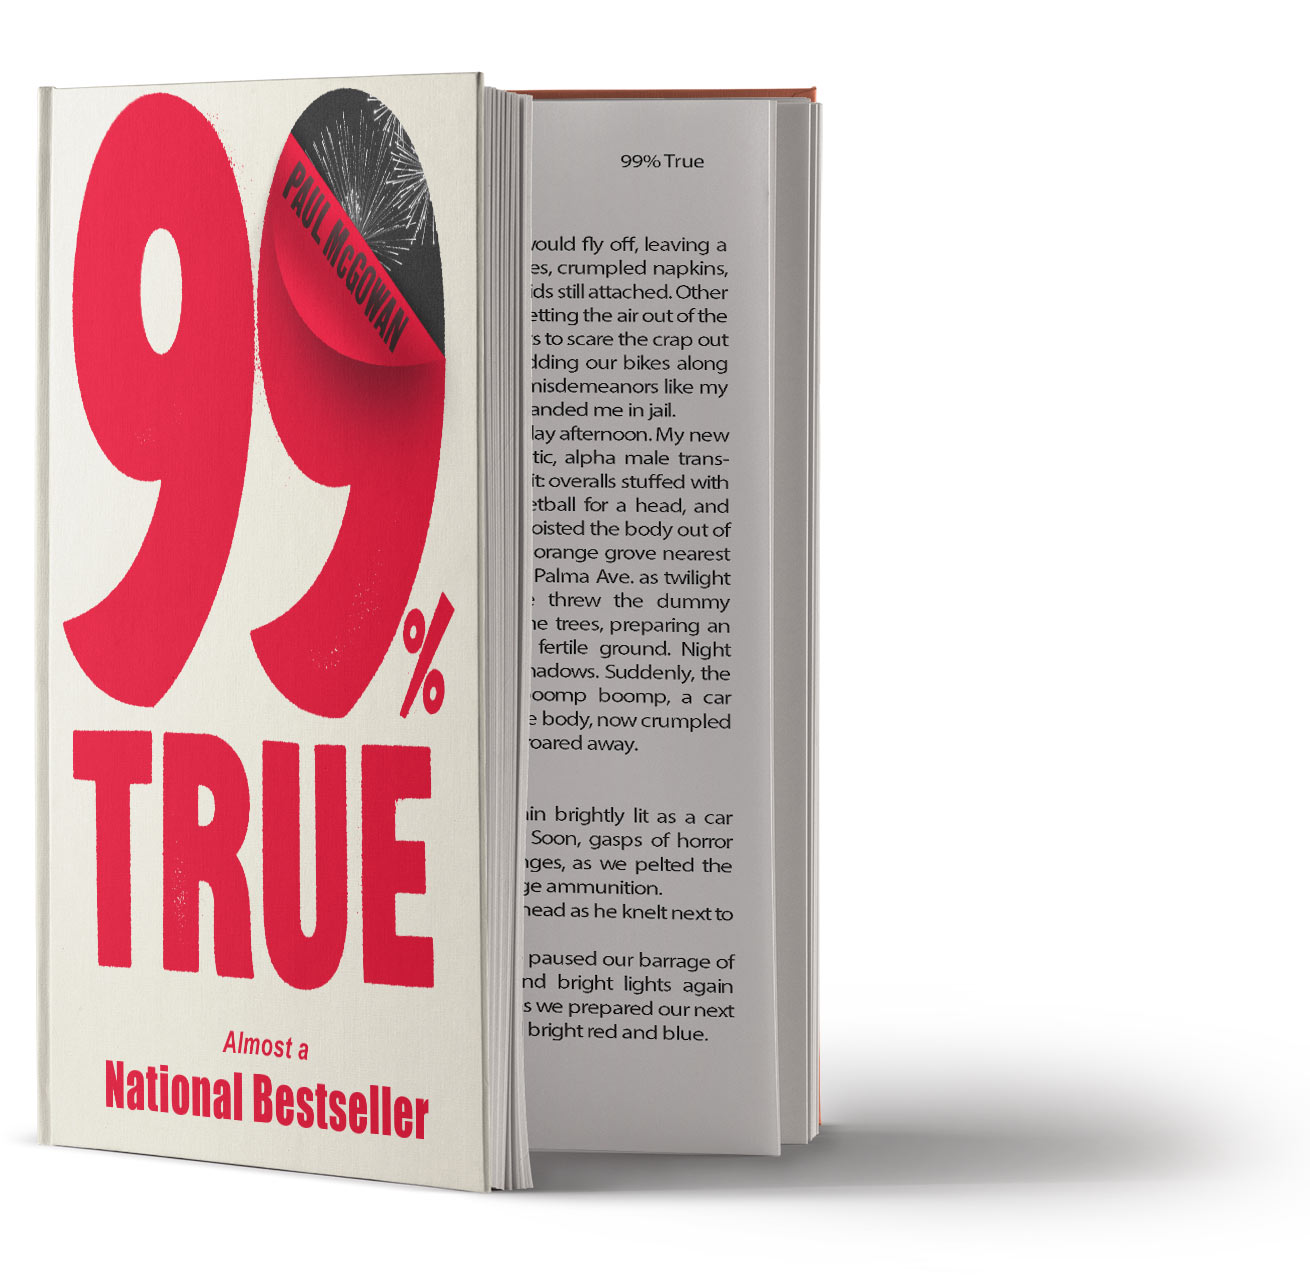 It's 99% True… - Paul McGowan tells all (and then some) in this riotous tale of misbegotten success that's 99% true in all the best ways. From his not-so-innocent youth growing up in the shadow of Disneyland and summer evenings in the innocent 1950s, to his dope-smoking, snake-eating, draft-dodging, loony-bin misadventure through Europe, to his struggles to build a thriving enterprise from a stack of dusty albums. Come enjoy funny bone laughs and heartrending stories as Paul tries to find his place in a worldwide community you never knew existed.Available now for purchase. Just click here to get your copy.